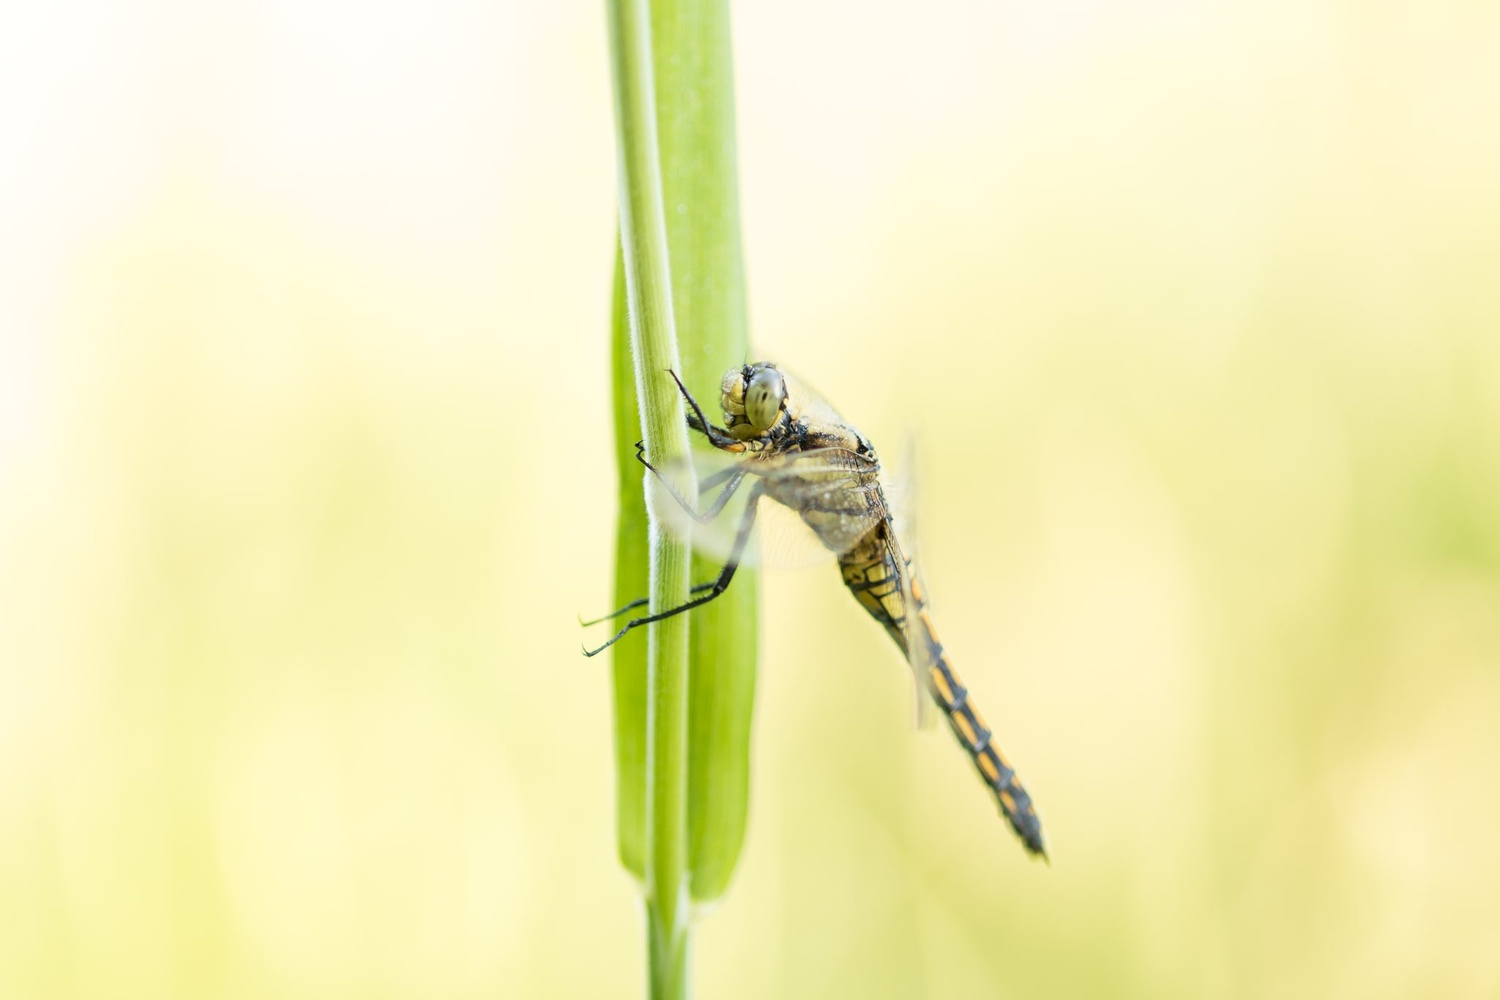 Dragonfly by Ron Meijer